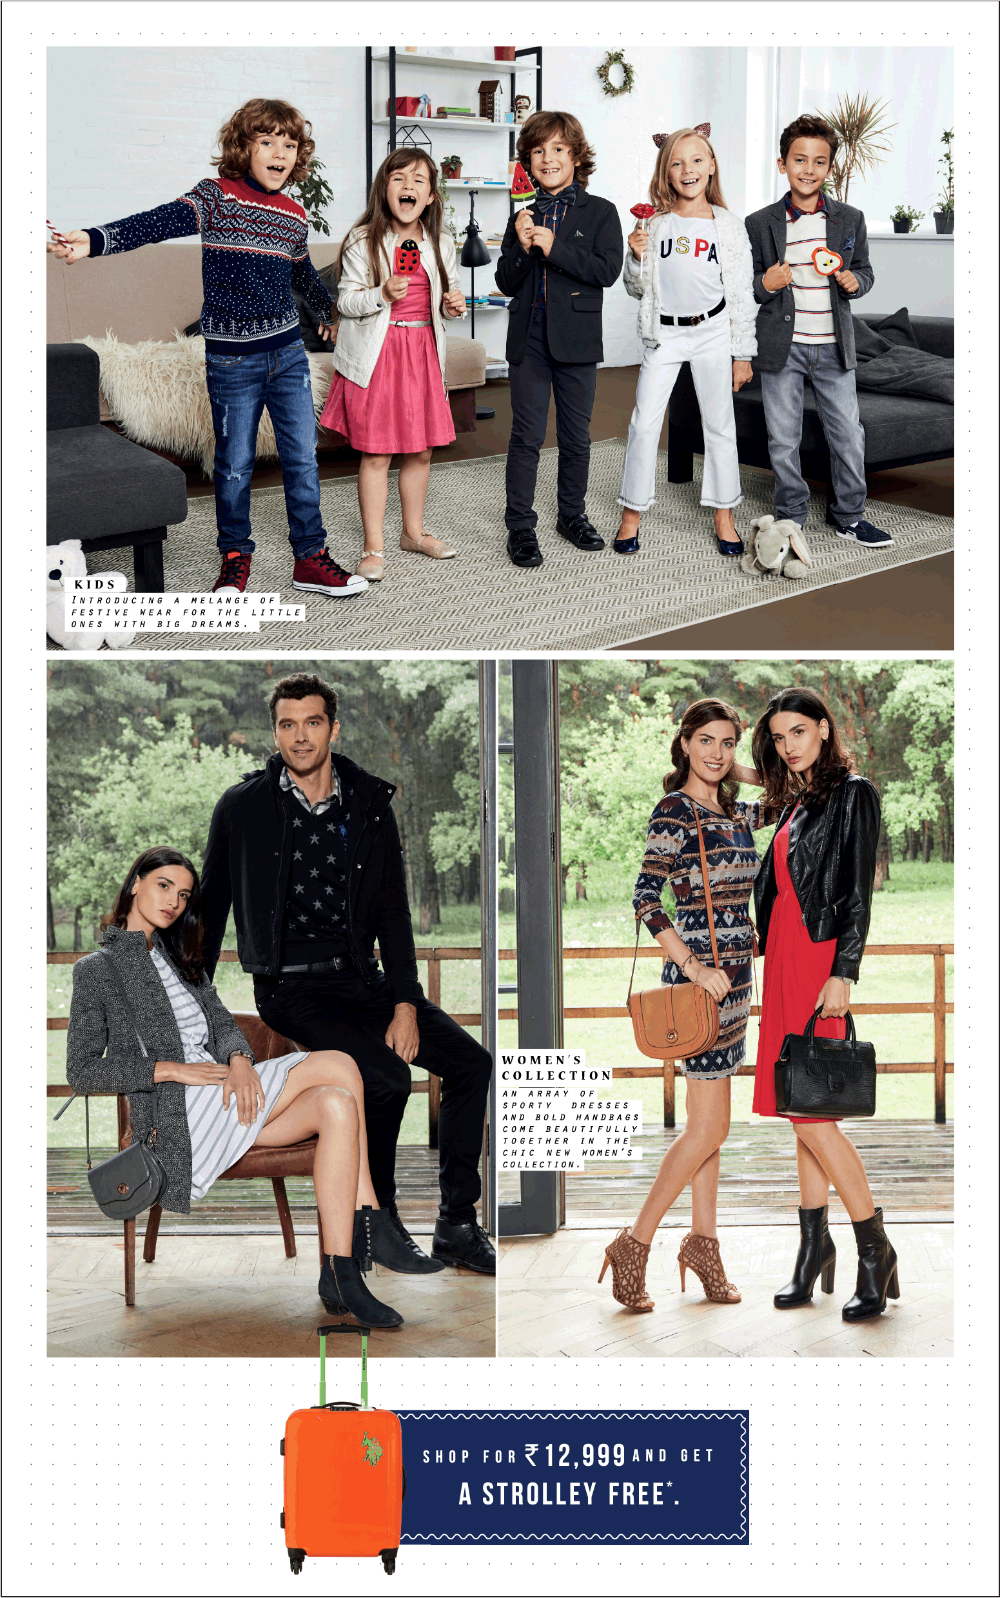 U S Polo Assn Shop For 12999 And Get A Trolley Free Ad Delhi Times 02 11 2018 Polo Assn U S Polo Assn Free Ads